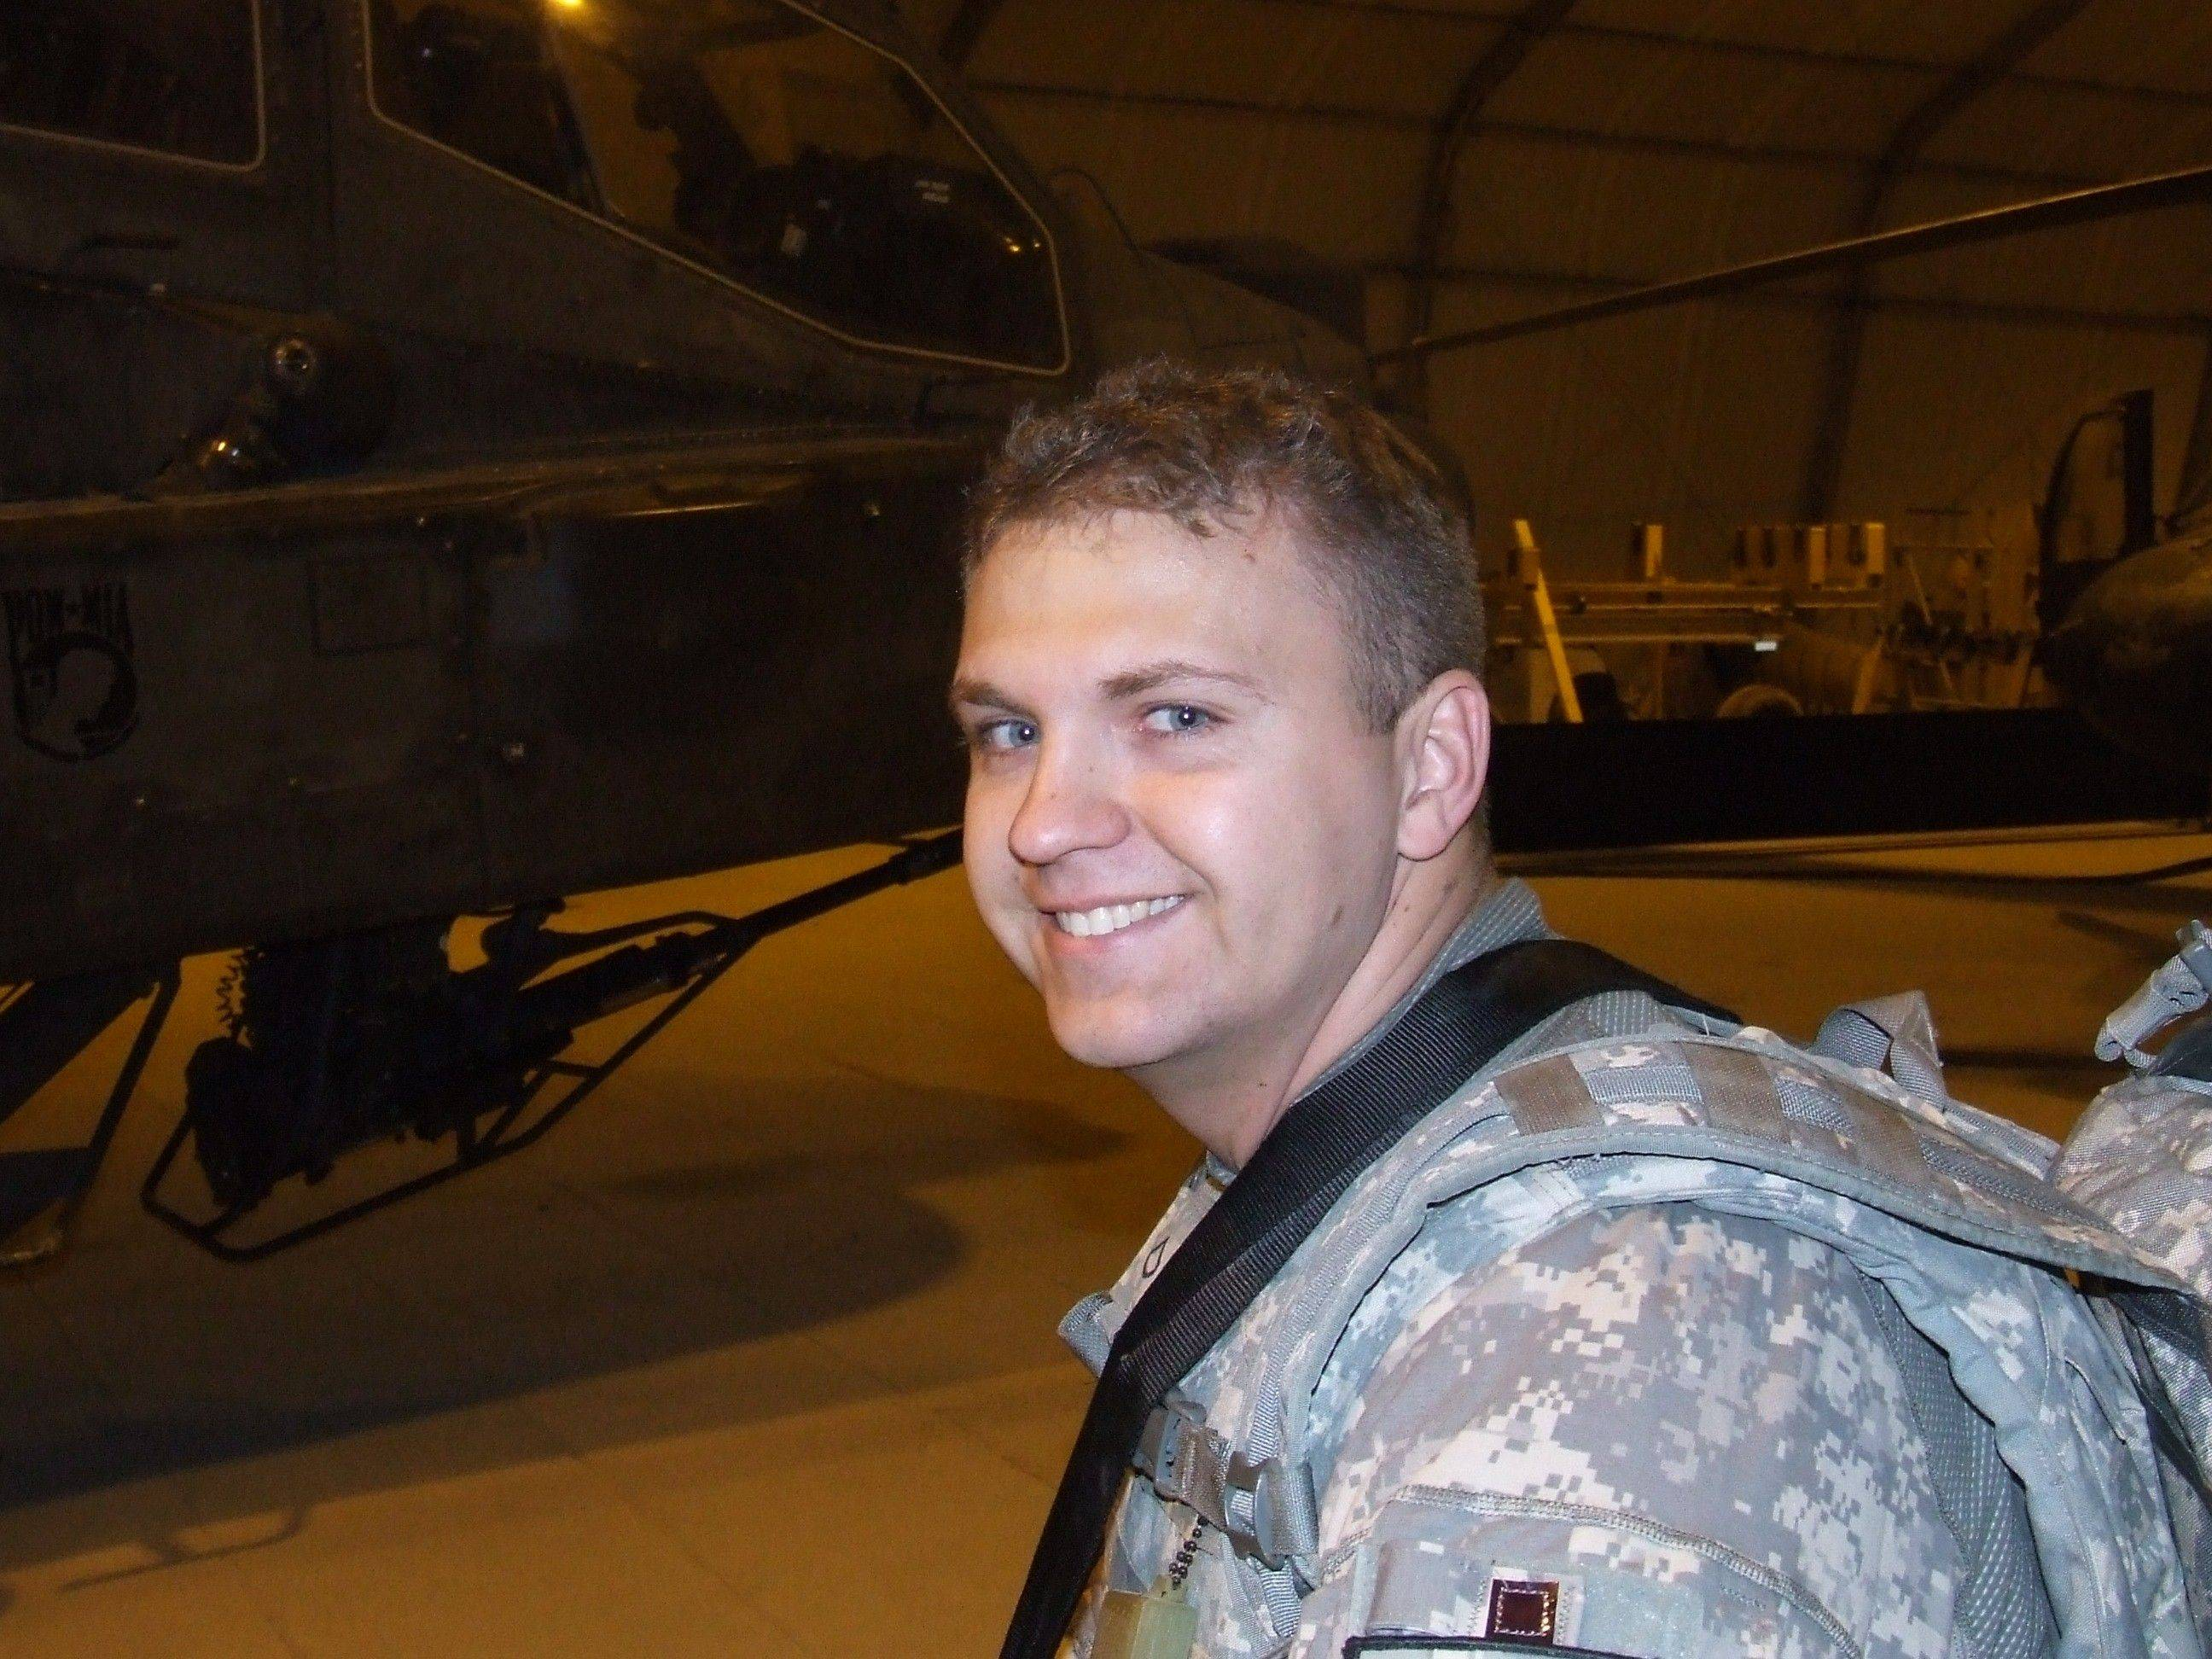 Lorrie Tucker's son-in-law, U.S. Army Private Brian Beuten, is a 2001 St. Edward High School graduate and is serving in Afghanistan.